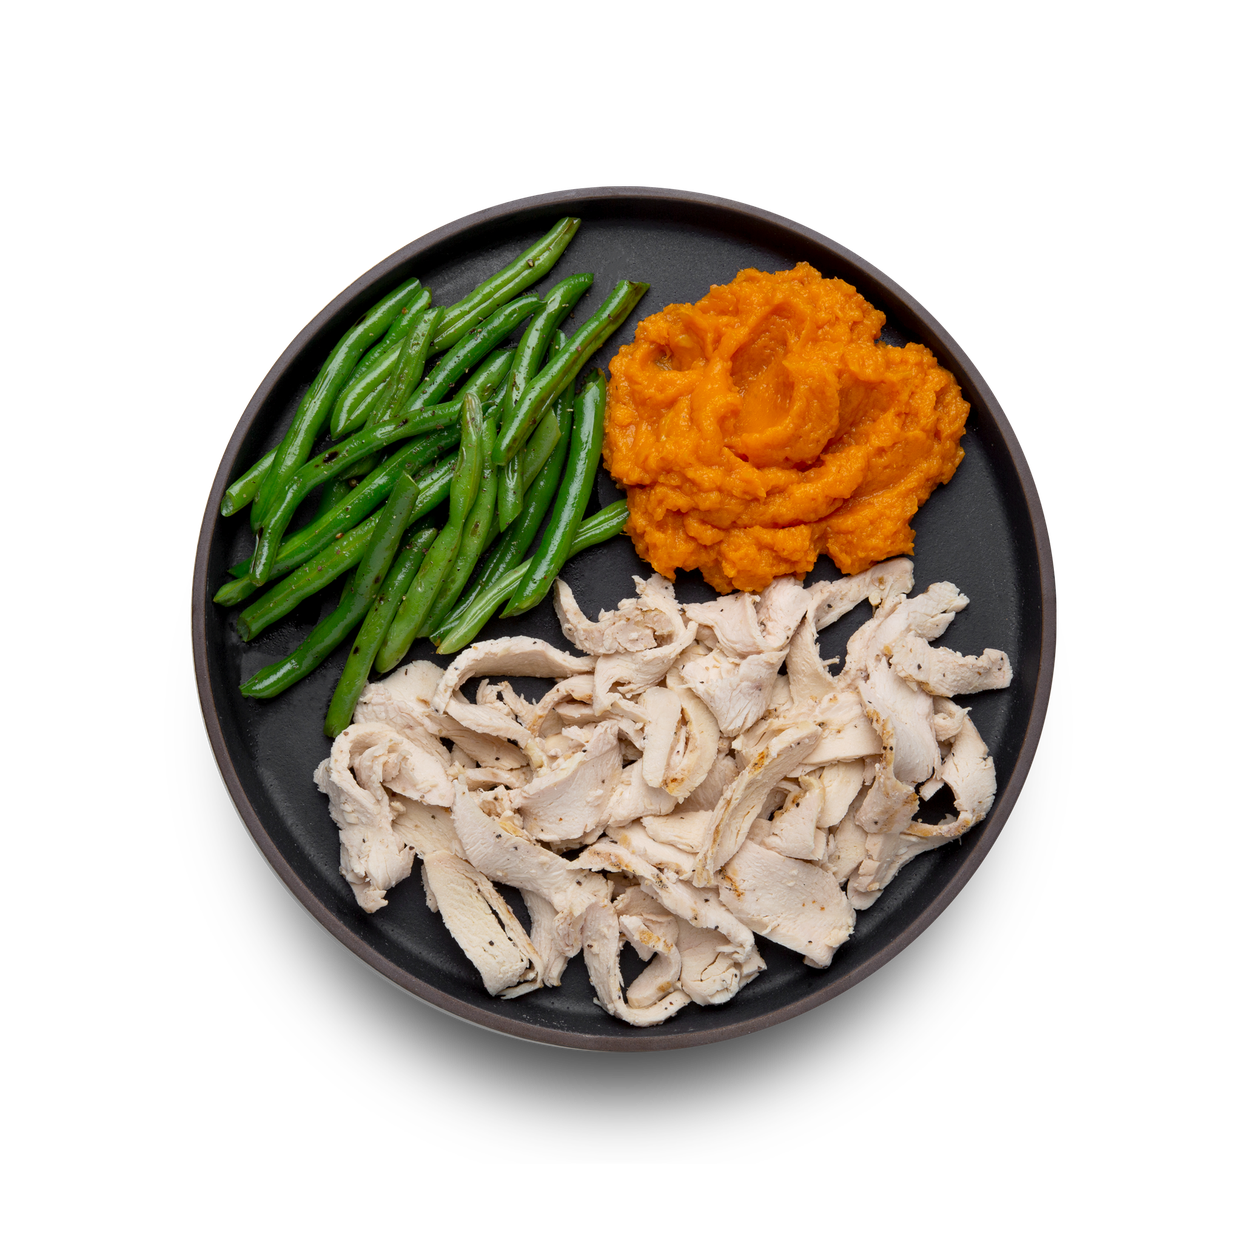 large - chicken with sweet potatoes & green beans